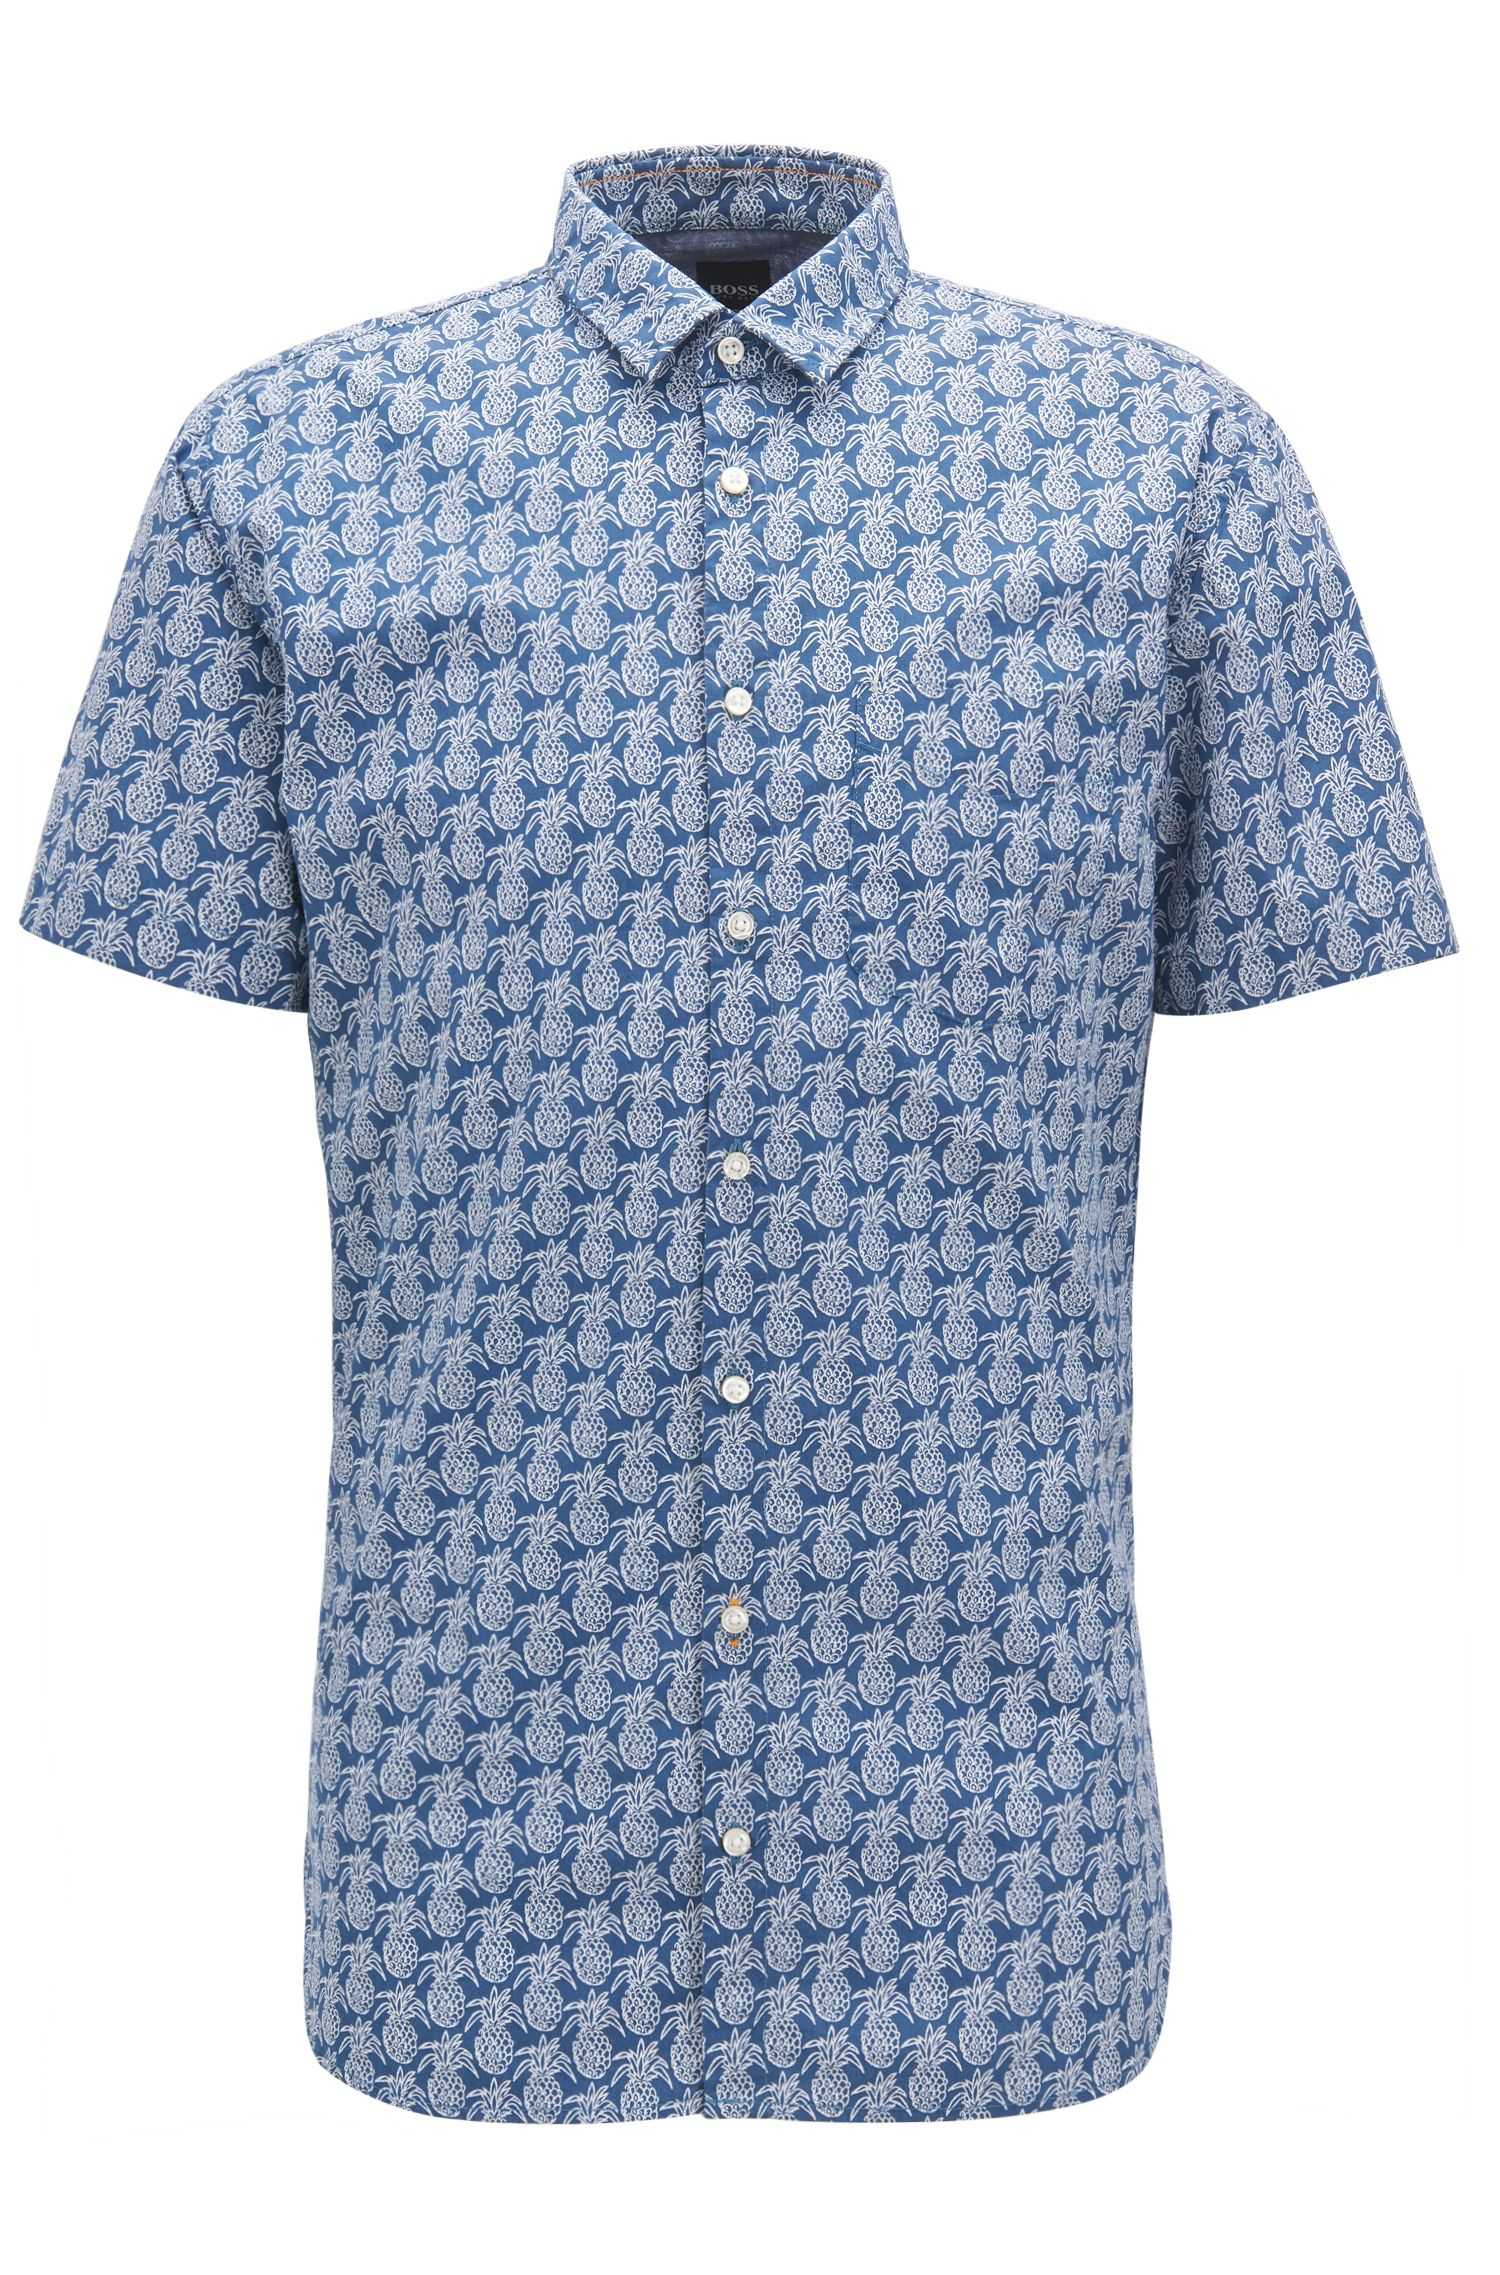 Pineapple-print cotton shirt in a slim fit